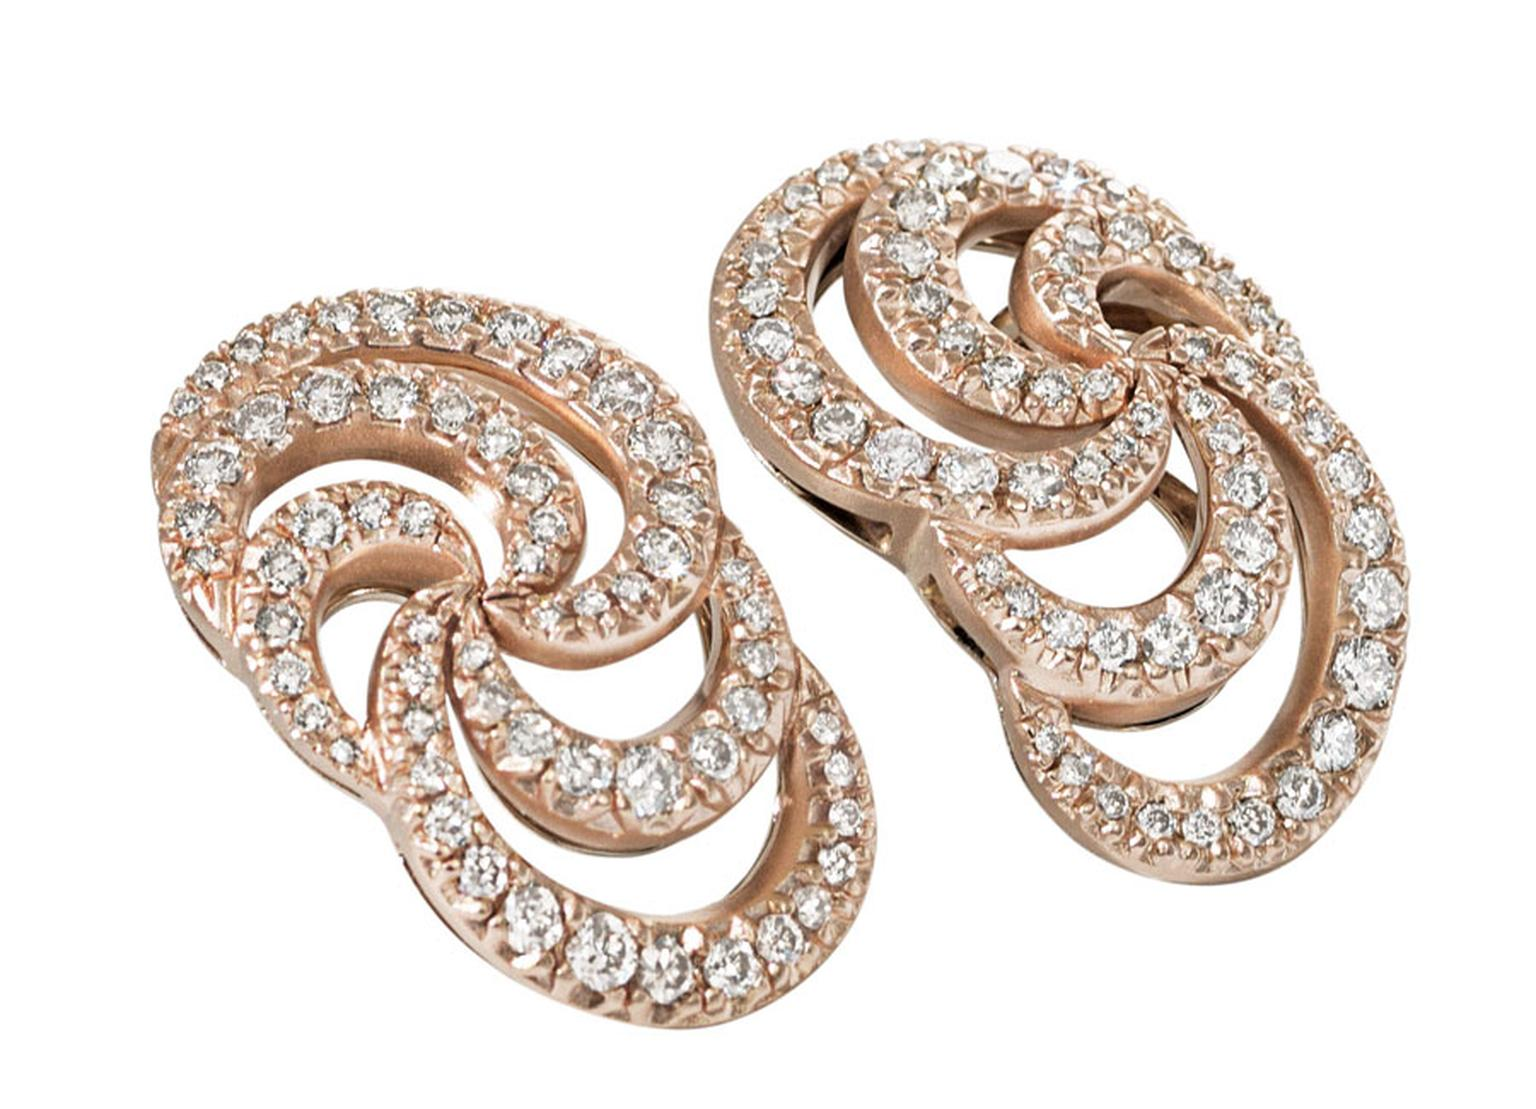 H-Stern-Earrings-in-rose-gold-with-diamonds-.jpg